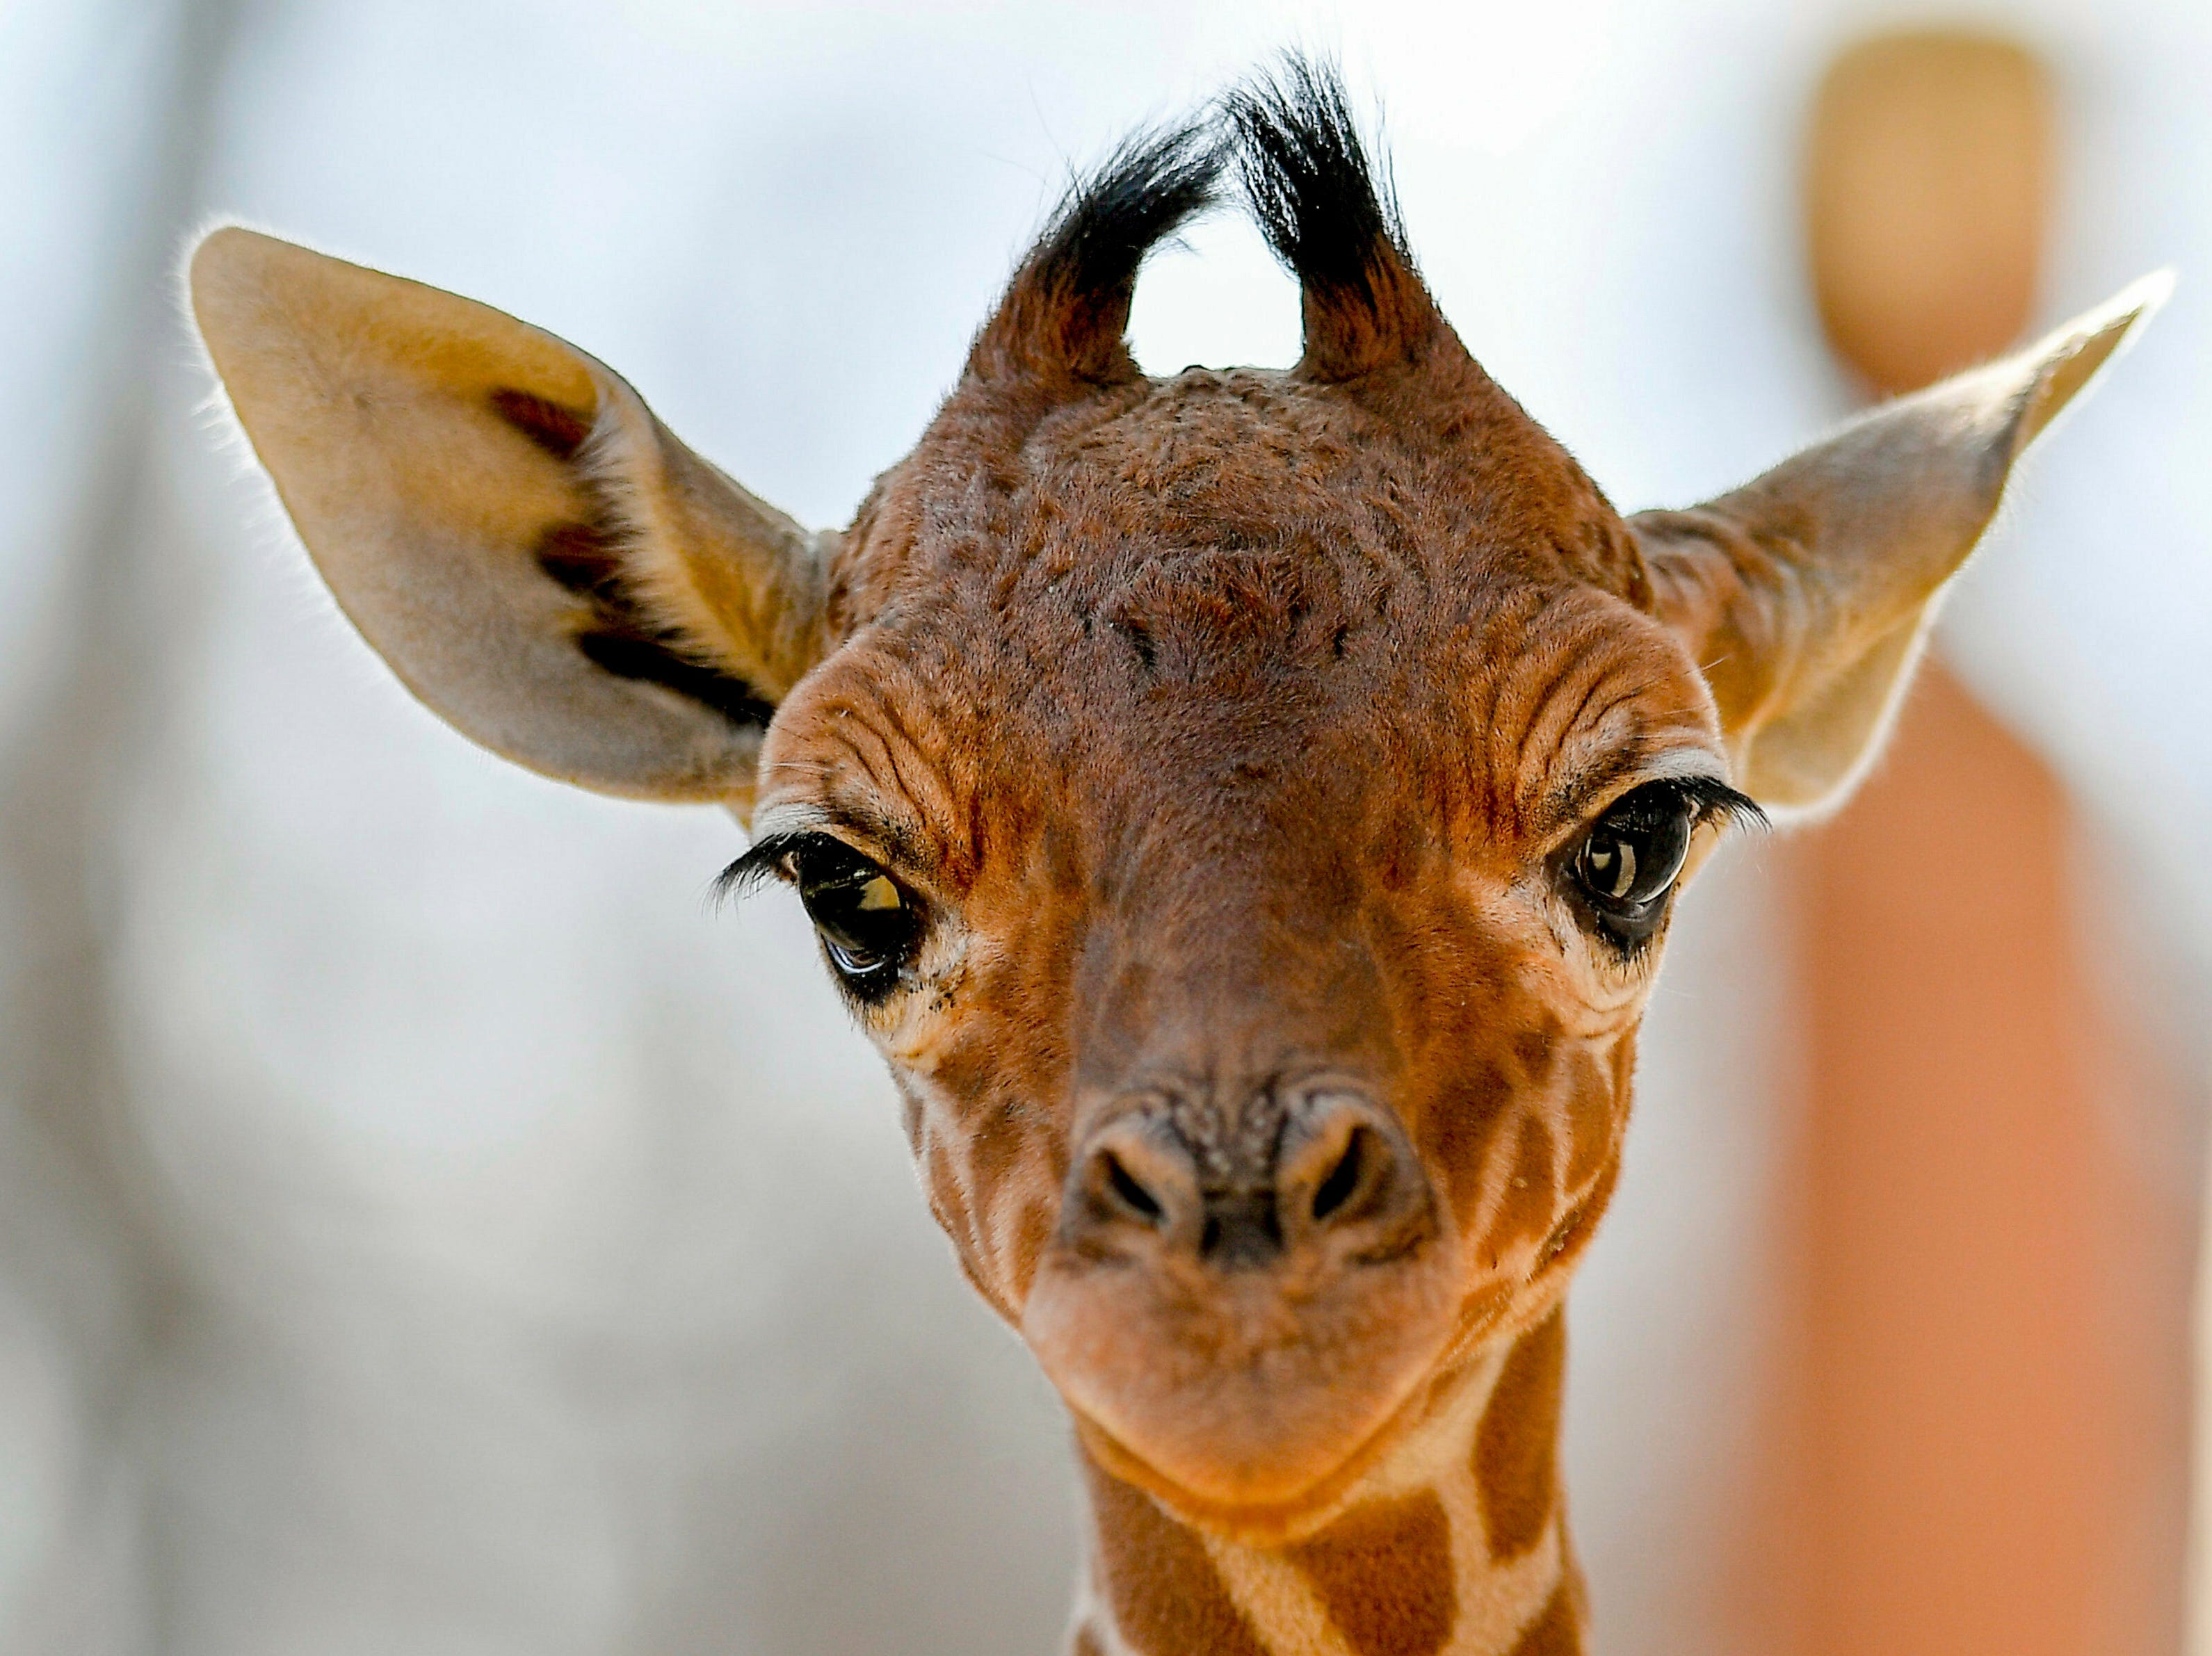 A baby reticulated giraffe, Giraffa camelopardalis reticulata, gazes into the camera in the zoo of Debrecen, Hungary, Wednesday, March 20, 2019. The calf was born two and half weeks ago. This species of giraffe is native to Somalia, Ethiopia and Kenya.